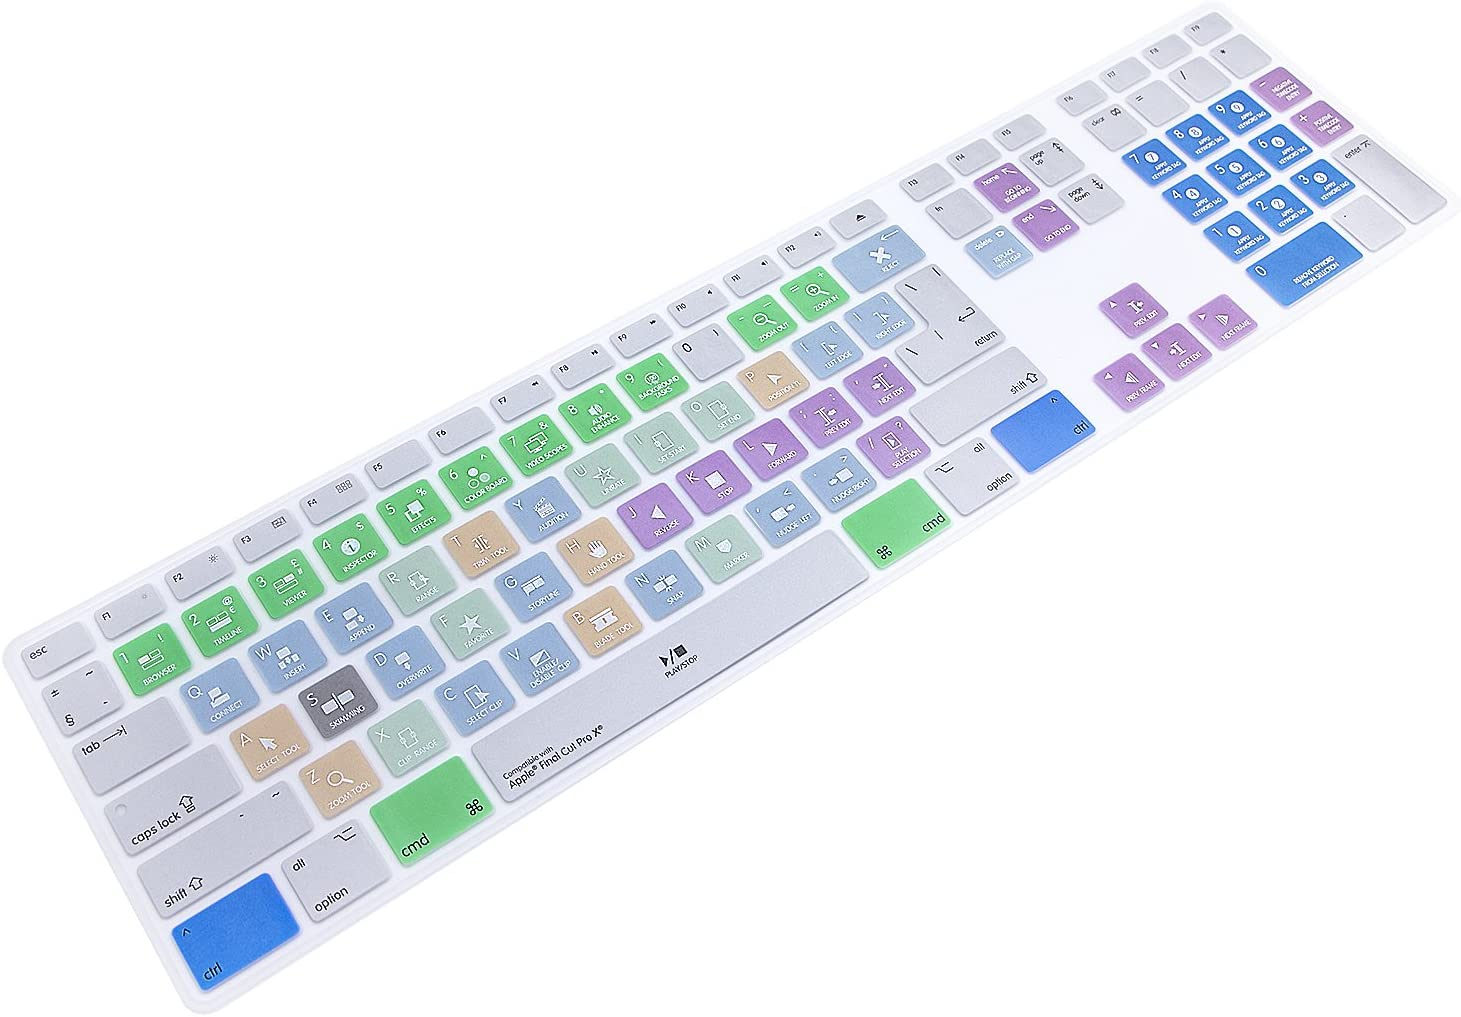 WYGCH Ultra Thin Shortcuts Extended Silicone Keyboard Protective Cover Skin for Apple Mac Aluminum Wired Keyboard MB110LL/B (A1243) Numeric Keypad (for Apple Final Cut pro X)